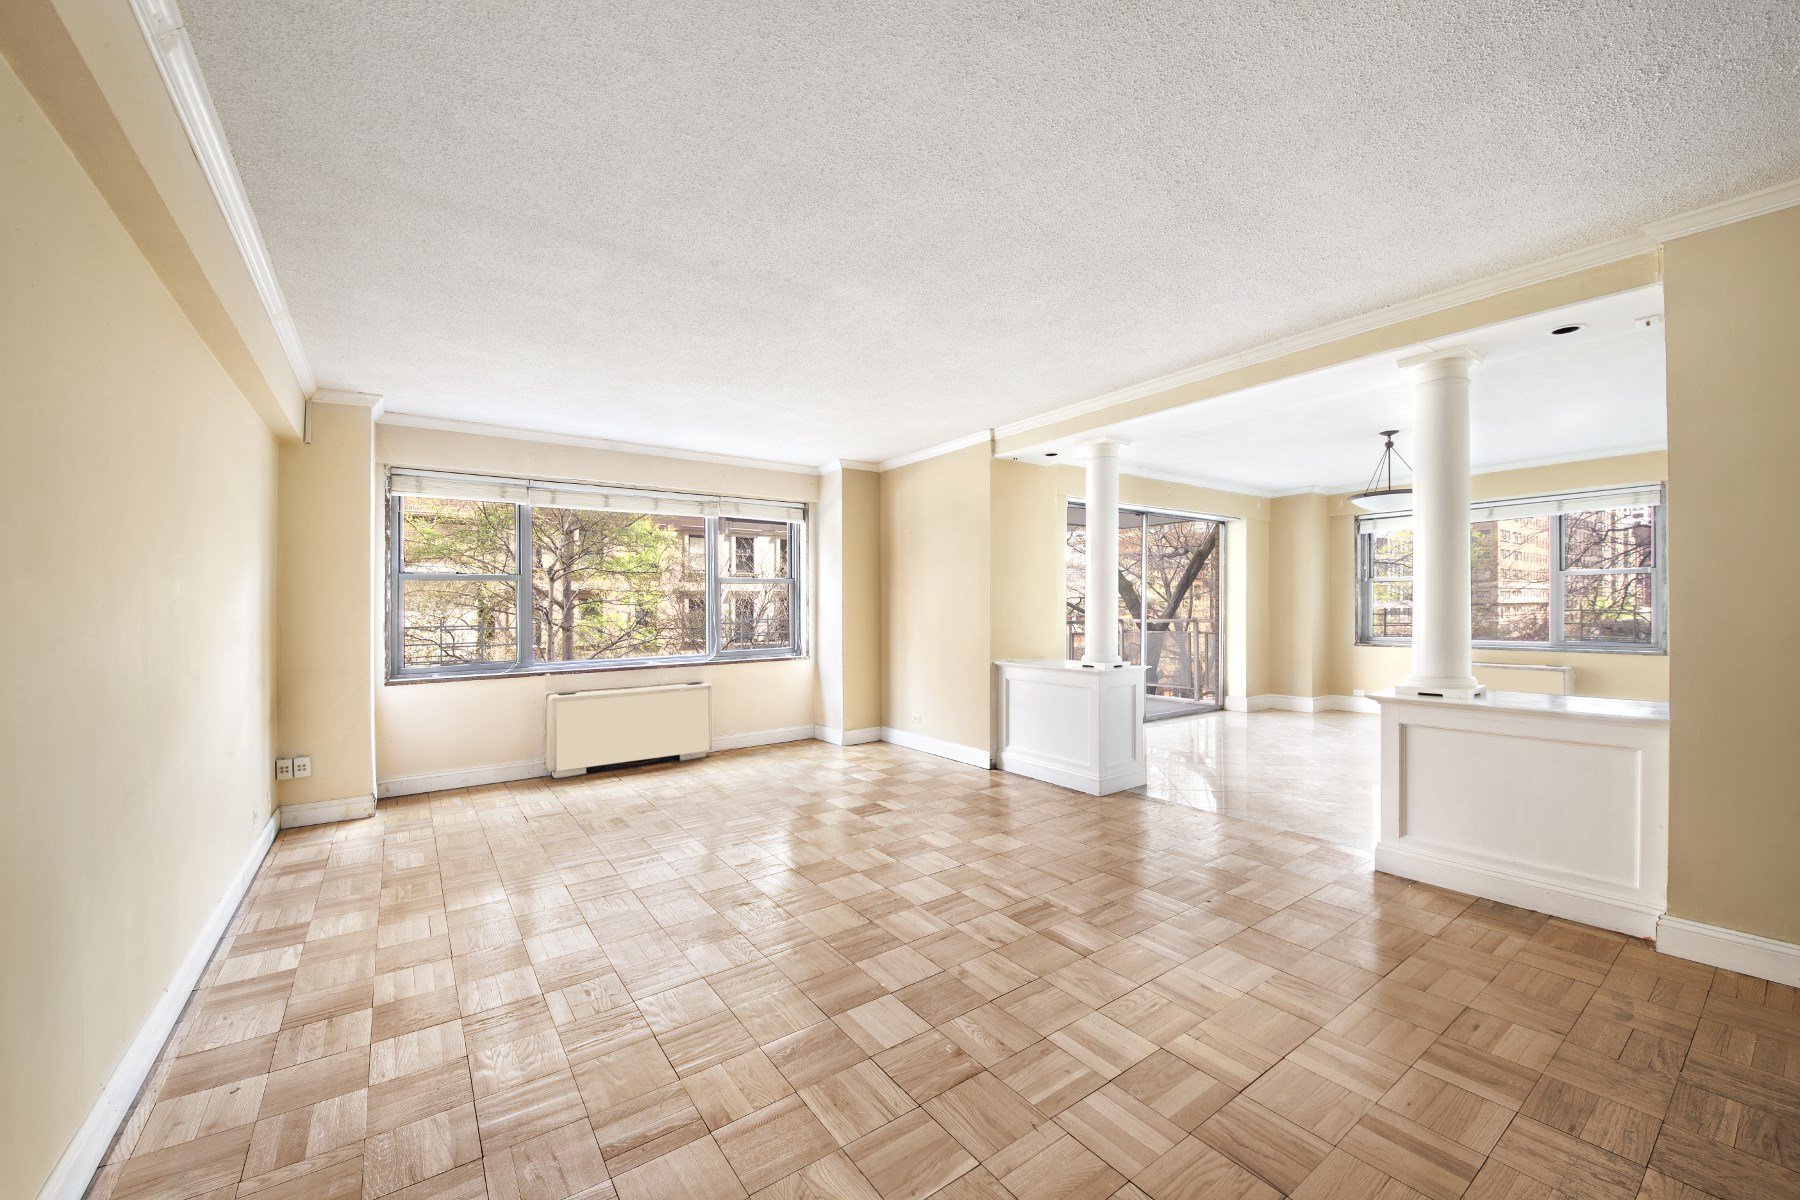 Co-op for Sale at 2 Bedroom Plus Home Office and Terrace 150 East 69th Street Apt 3fx Upper East Side, New York, New York 10065 United States